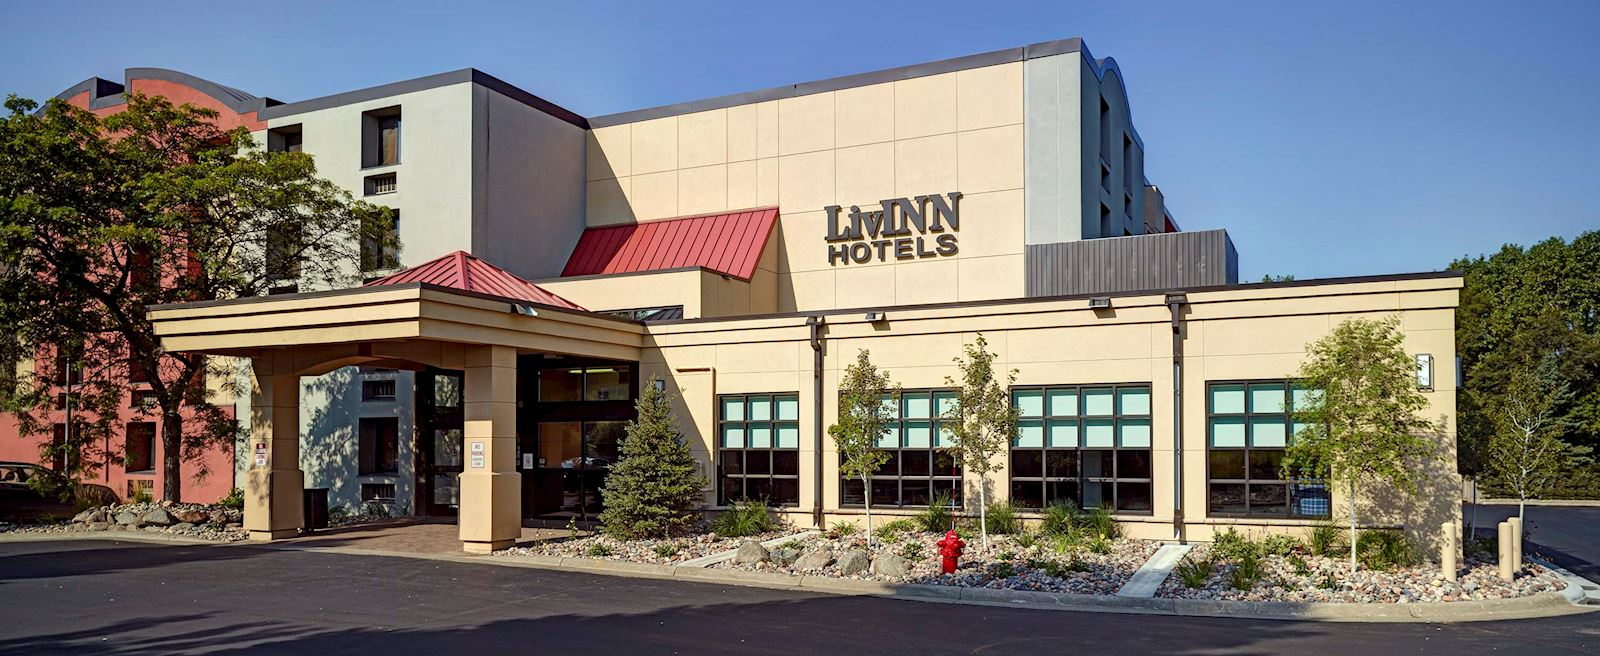 Livinn Hotels Minneapolis Minnesota